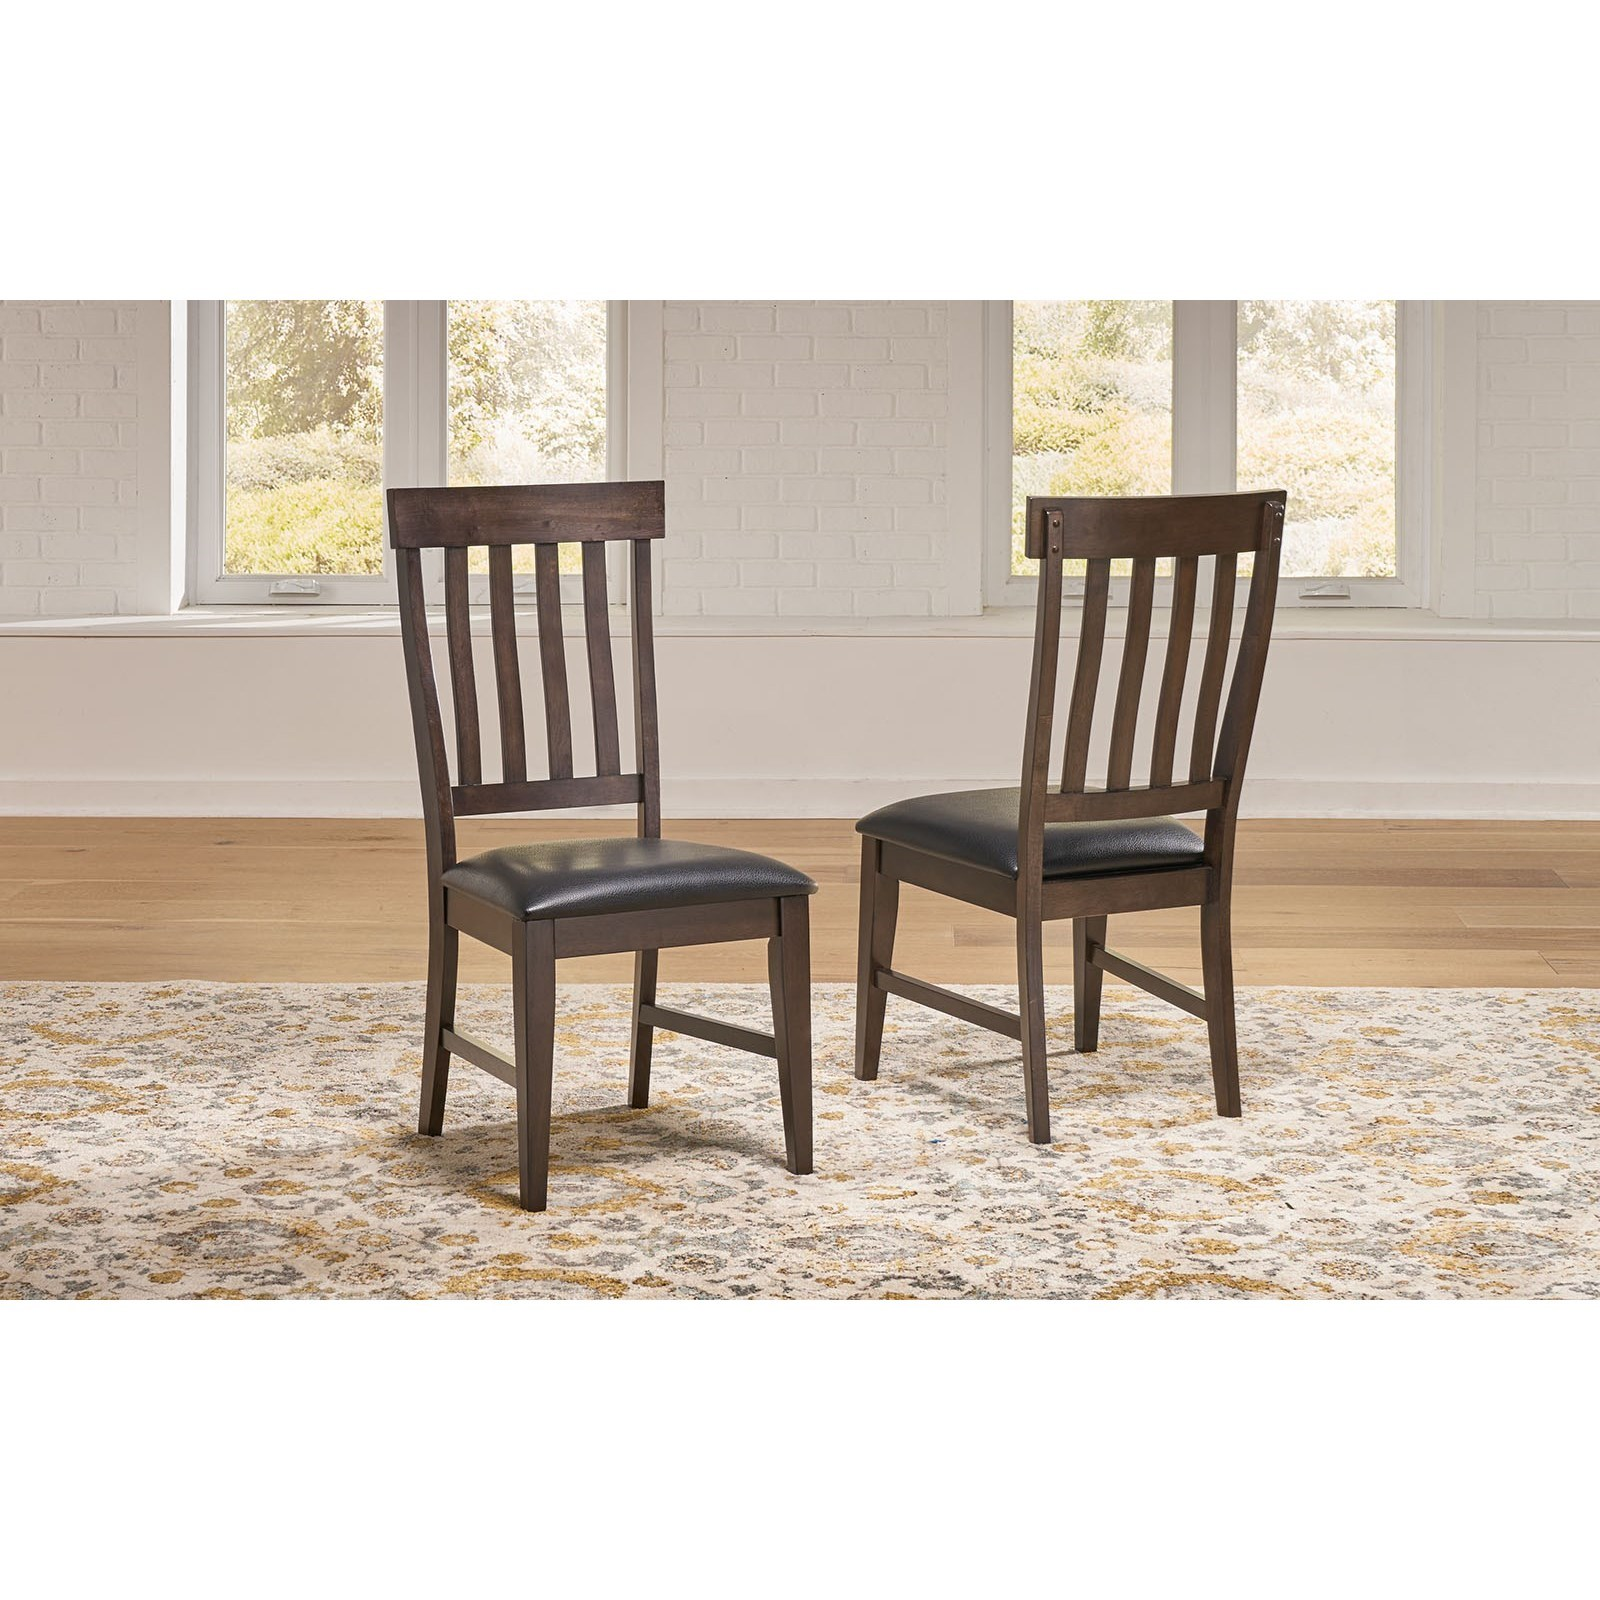 Bremerton Dining Chair by AAmerica at Home Furnishings Direct